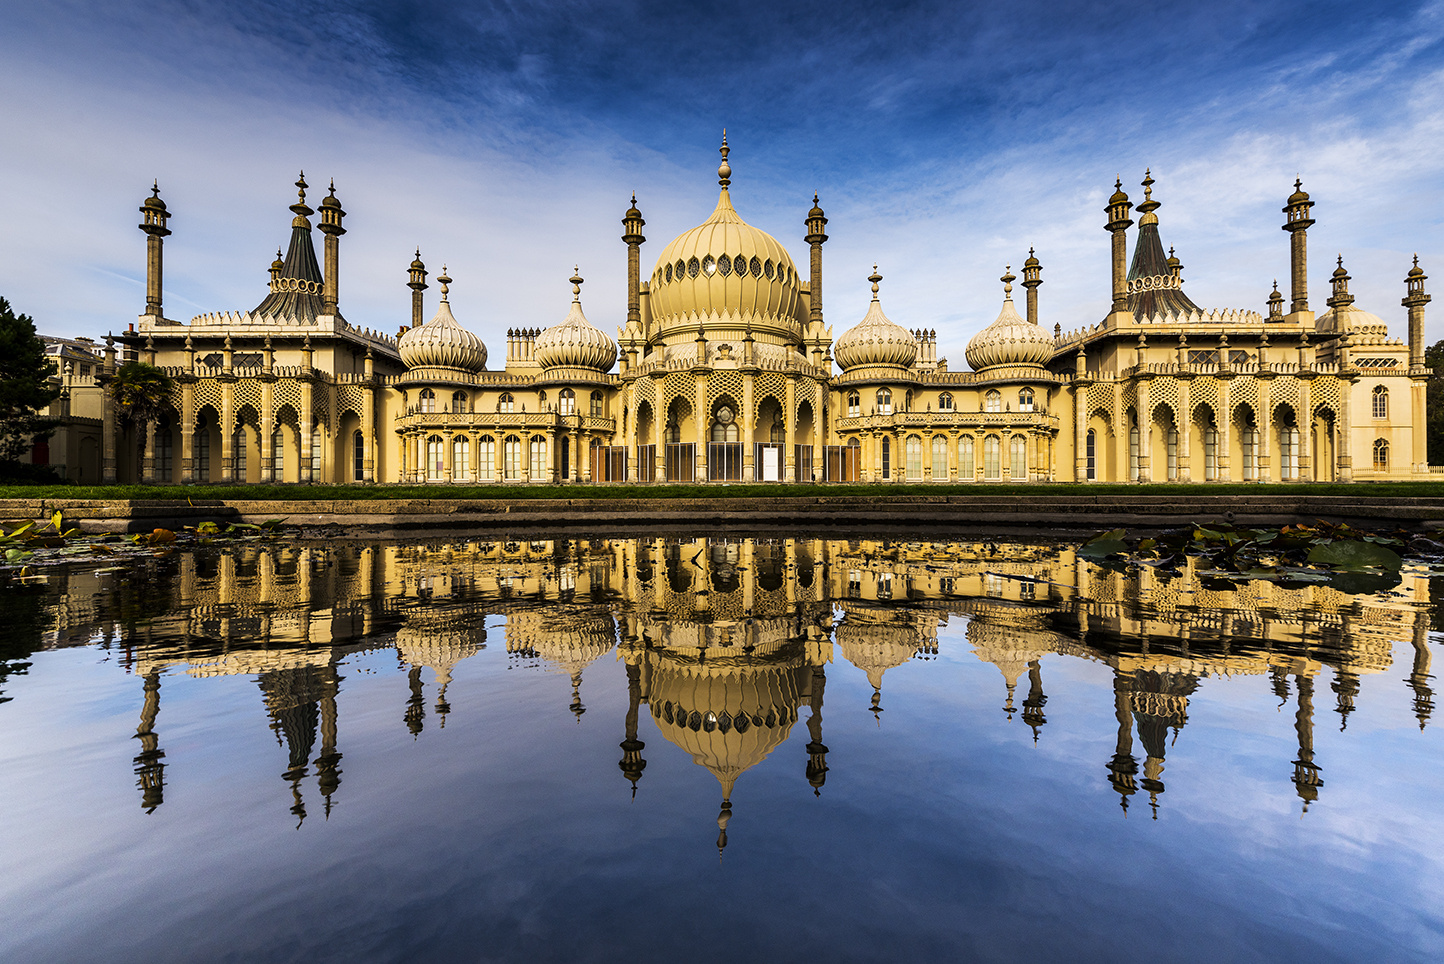 Palace in the Pond by Simon Anderson